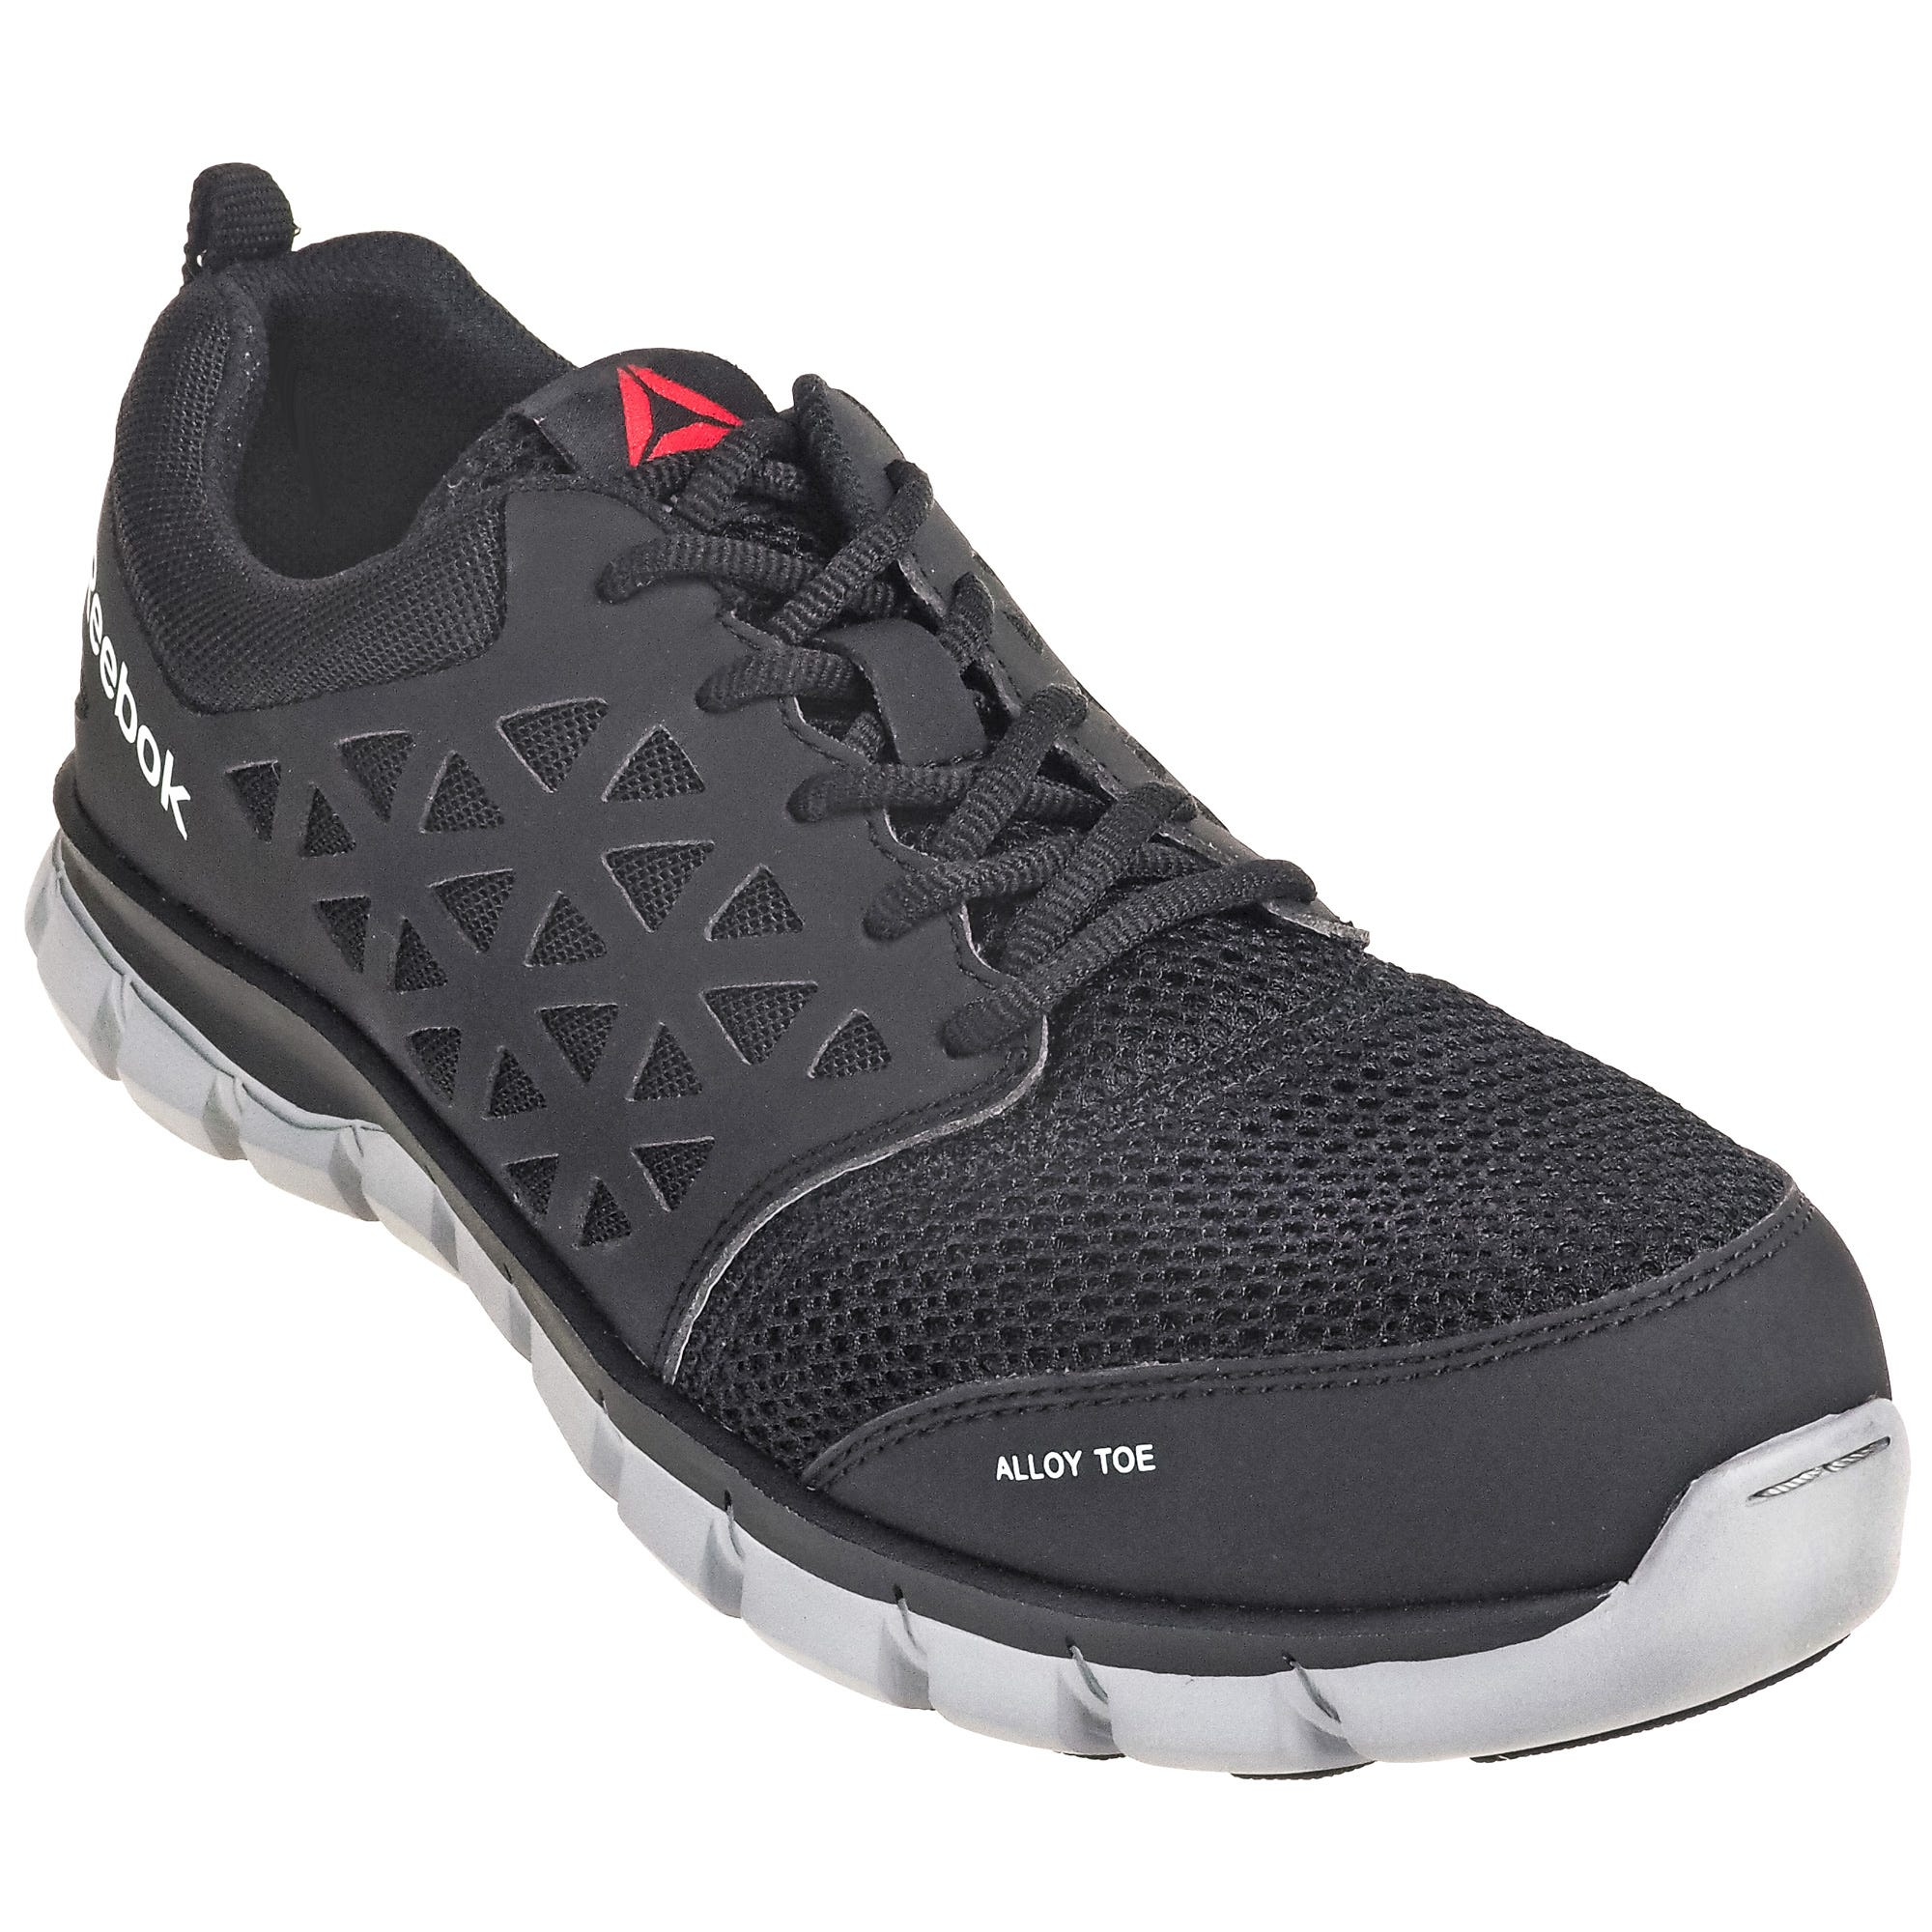 Reebok RB4041 Black EH Alloy Toe Athletic Oxford Slip-Resistant Shoes